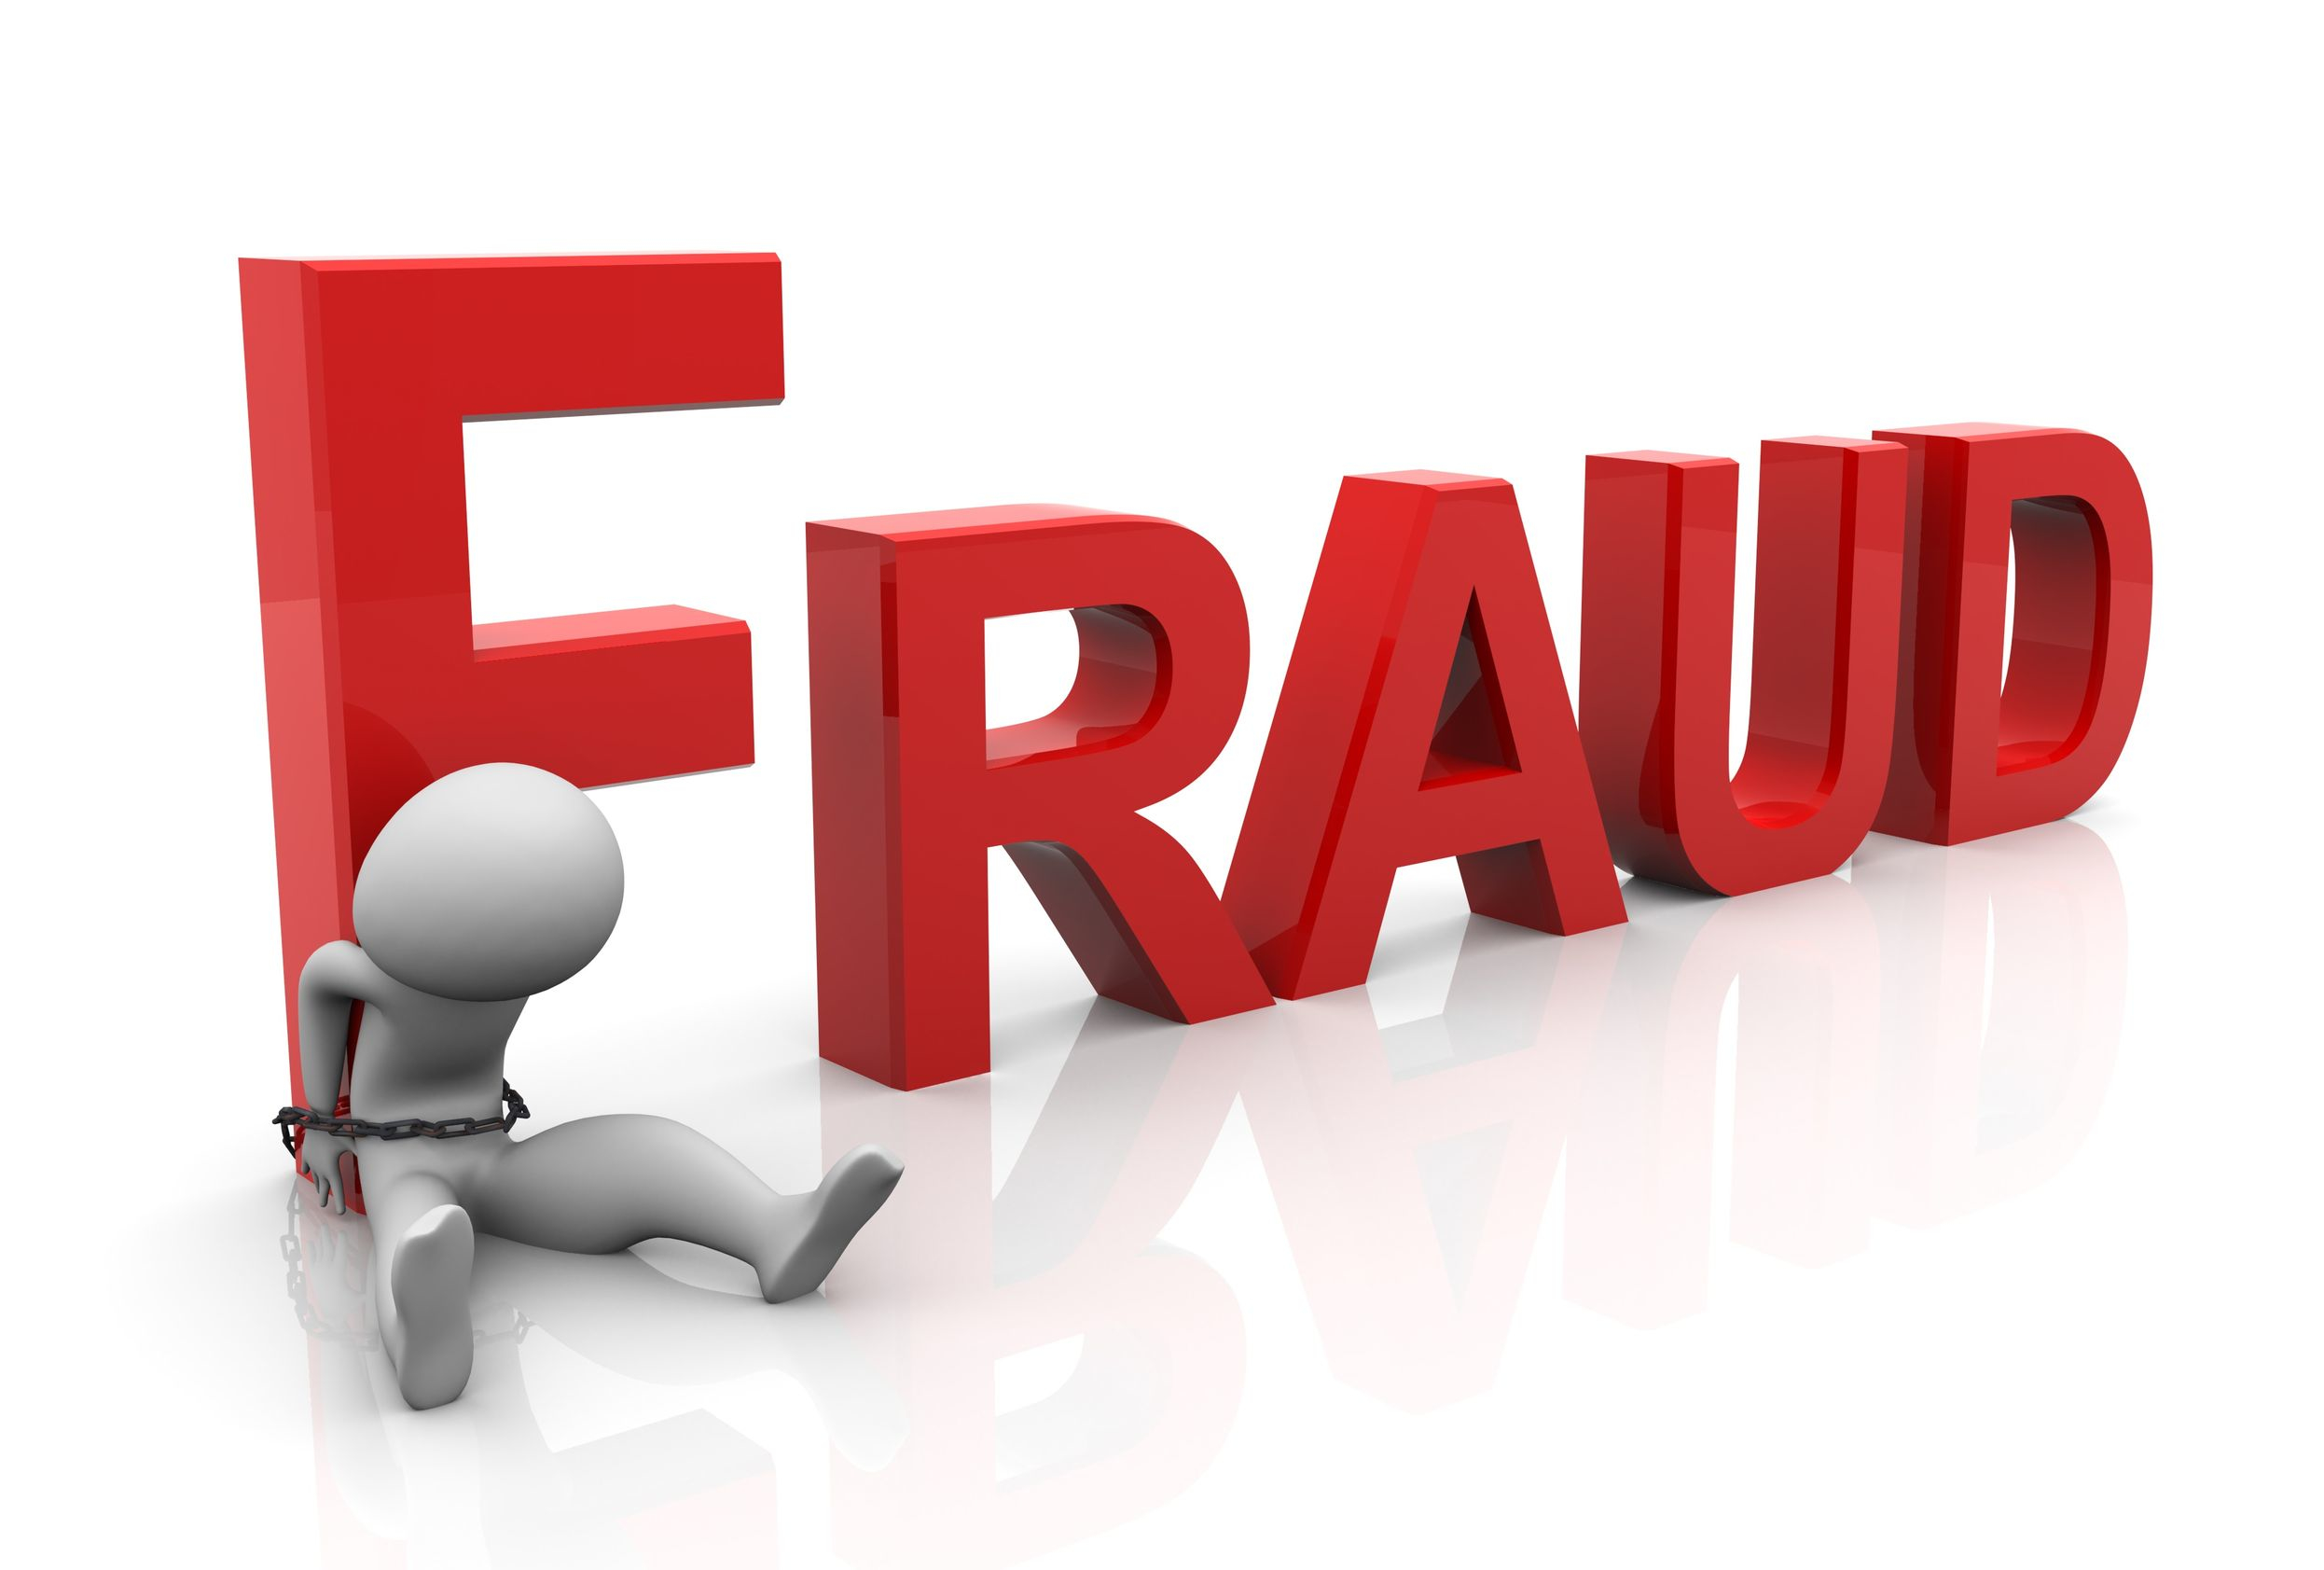 fraud case The fbi is the primary agency for exposing and investigating health care fraud, with jurisdiction over both federal and private insurance programs.